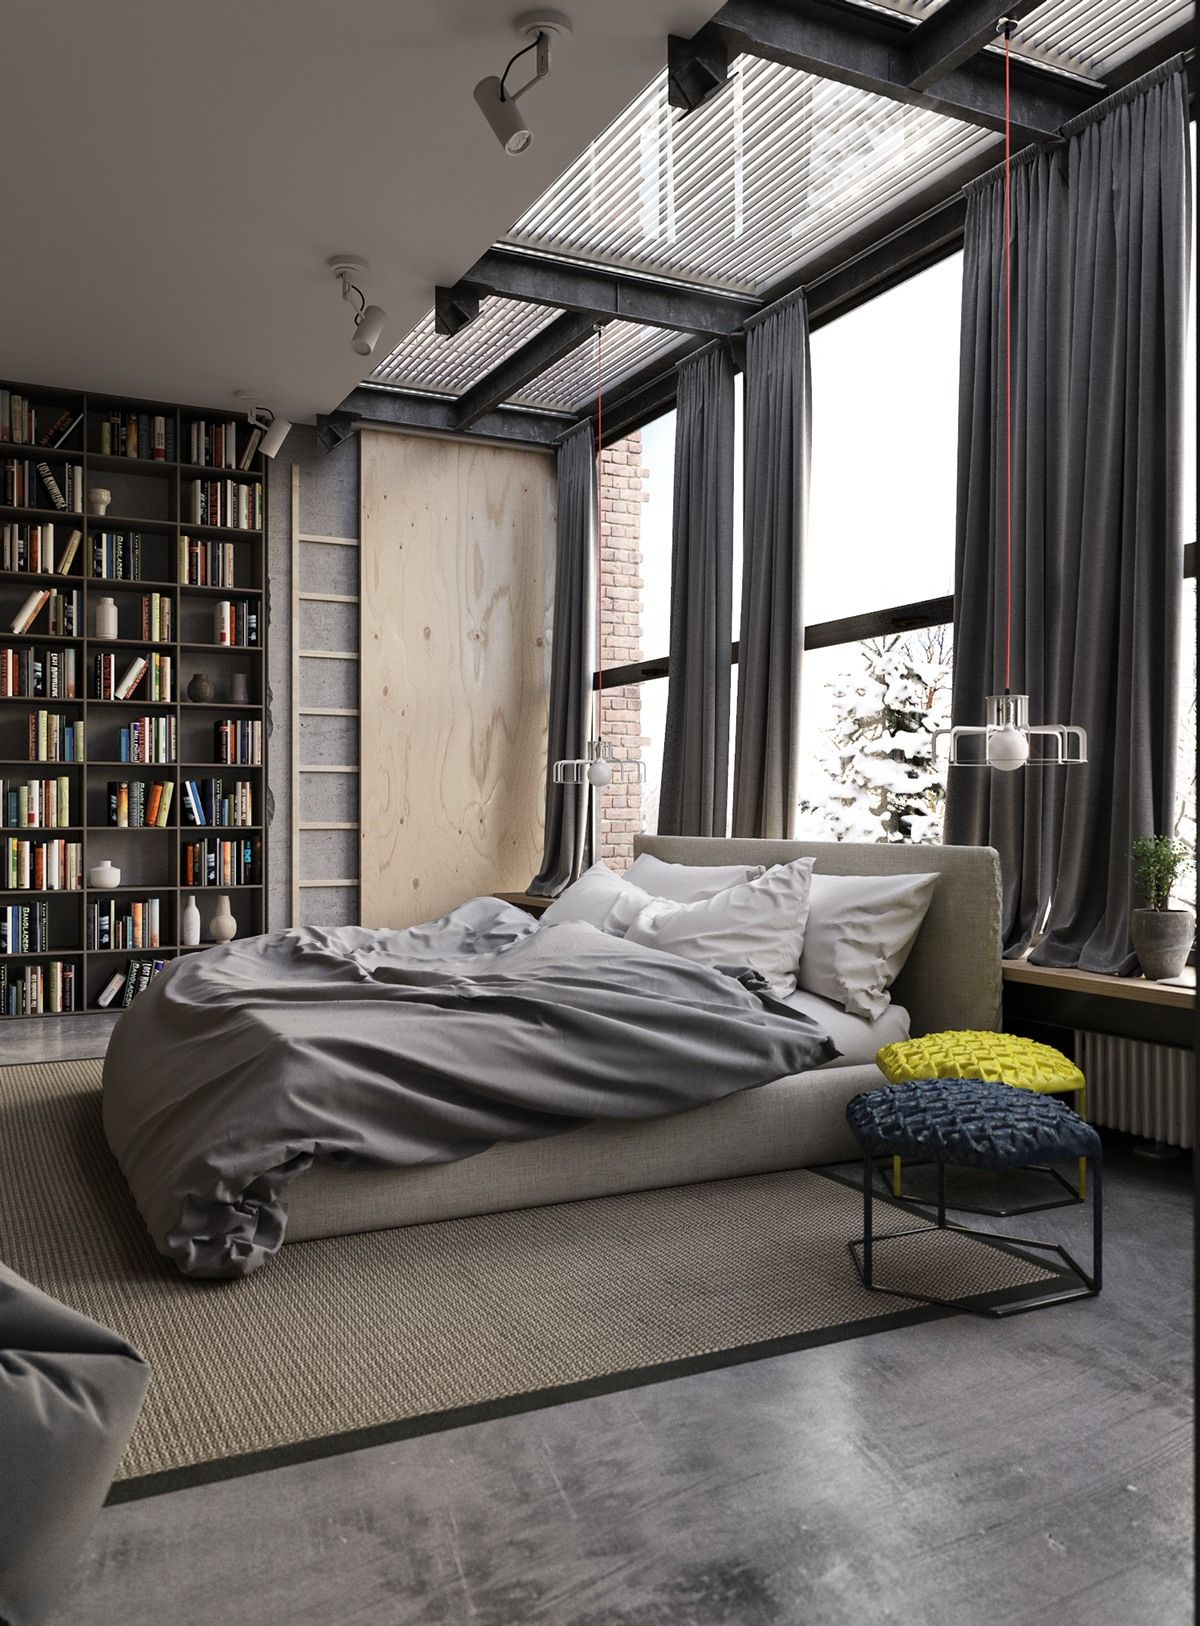 design style ideas bedroom half tips brick the industrial guide concrete wall essential